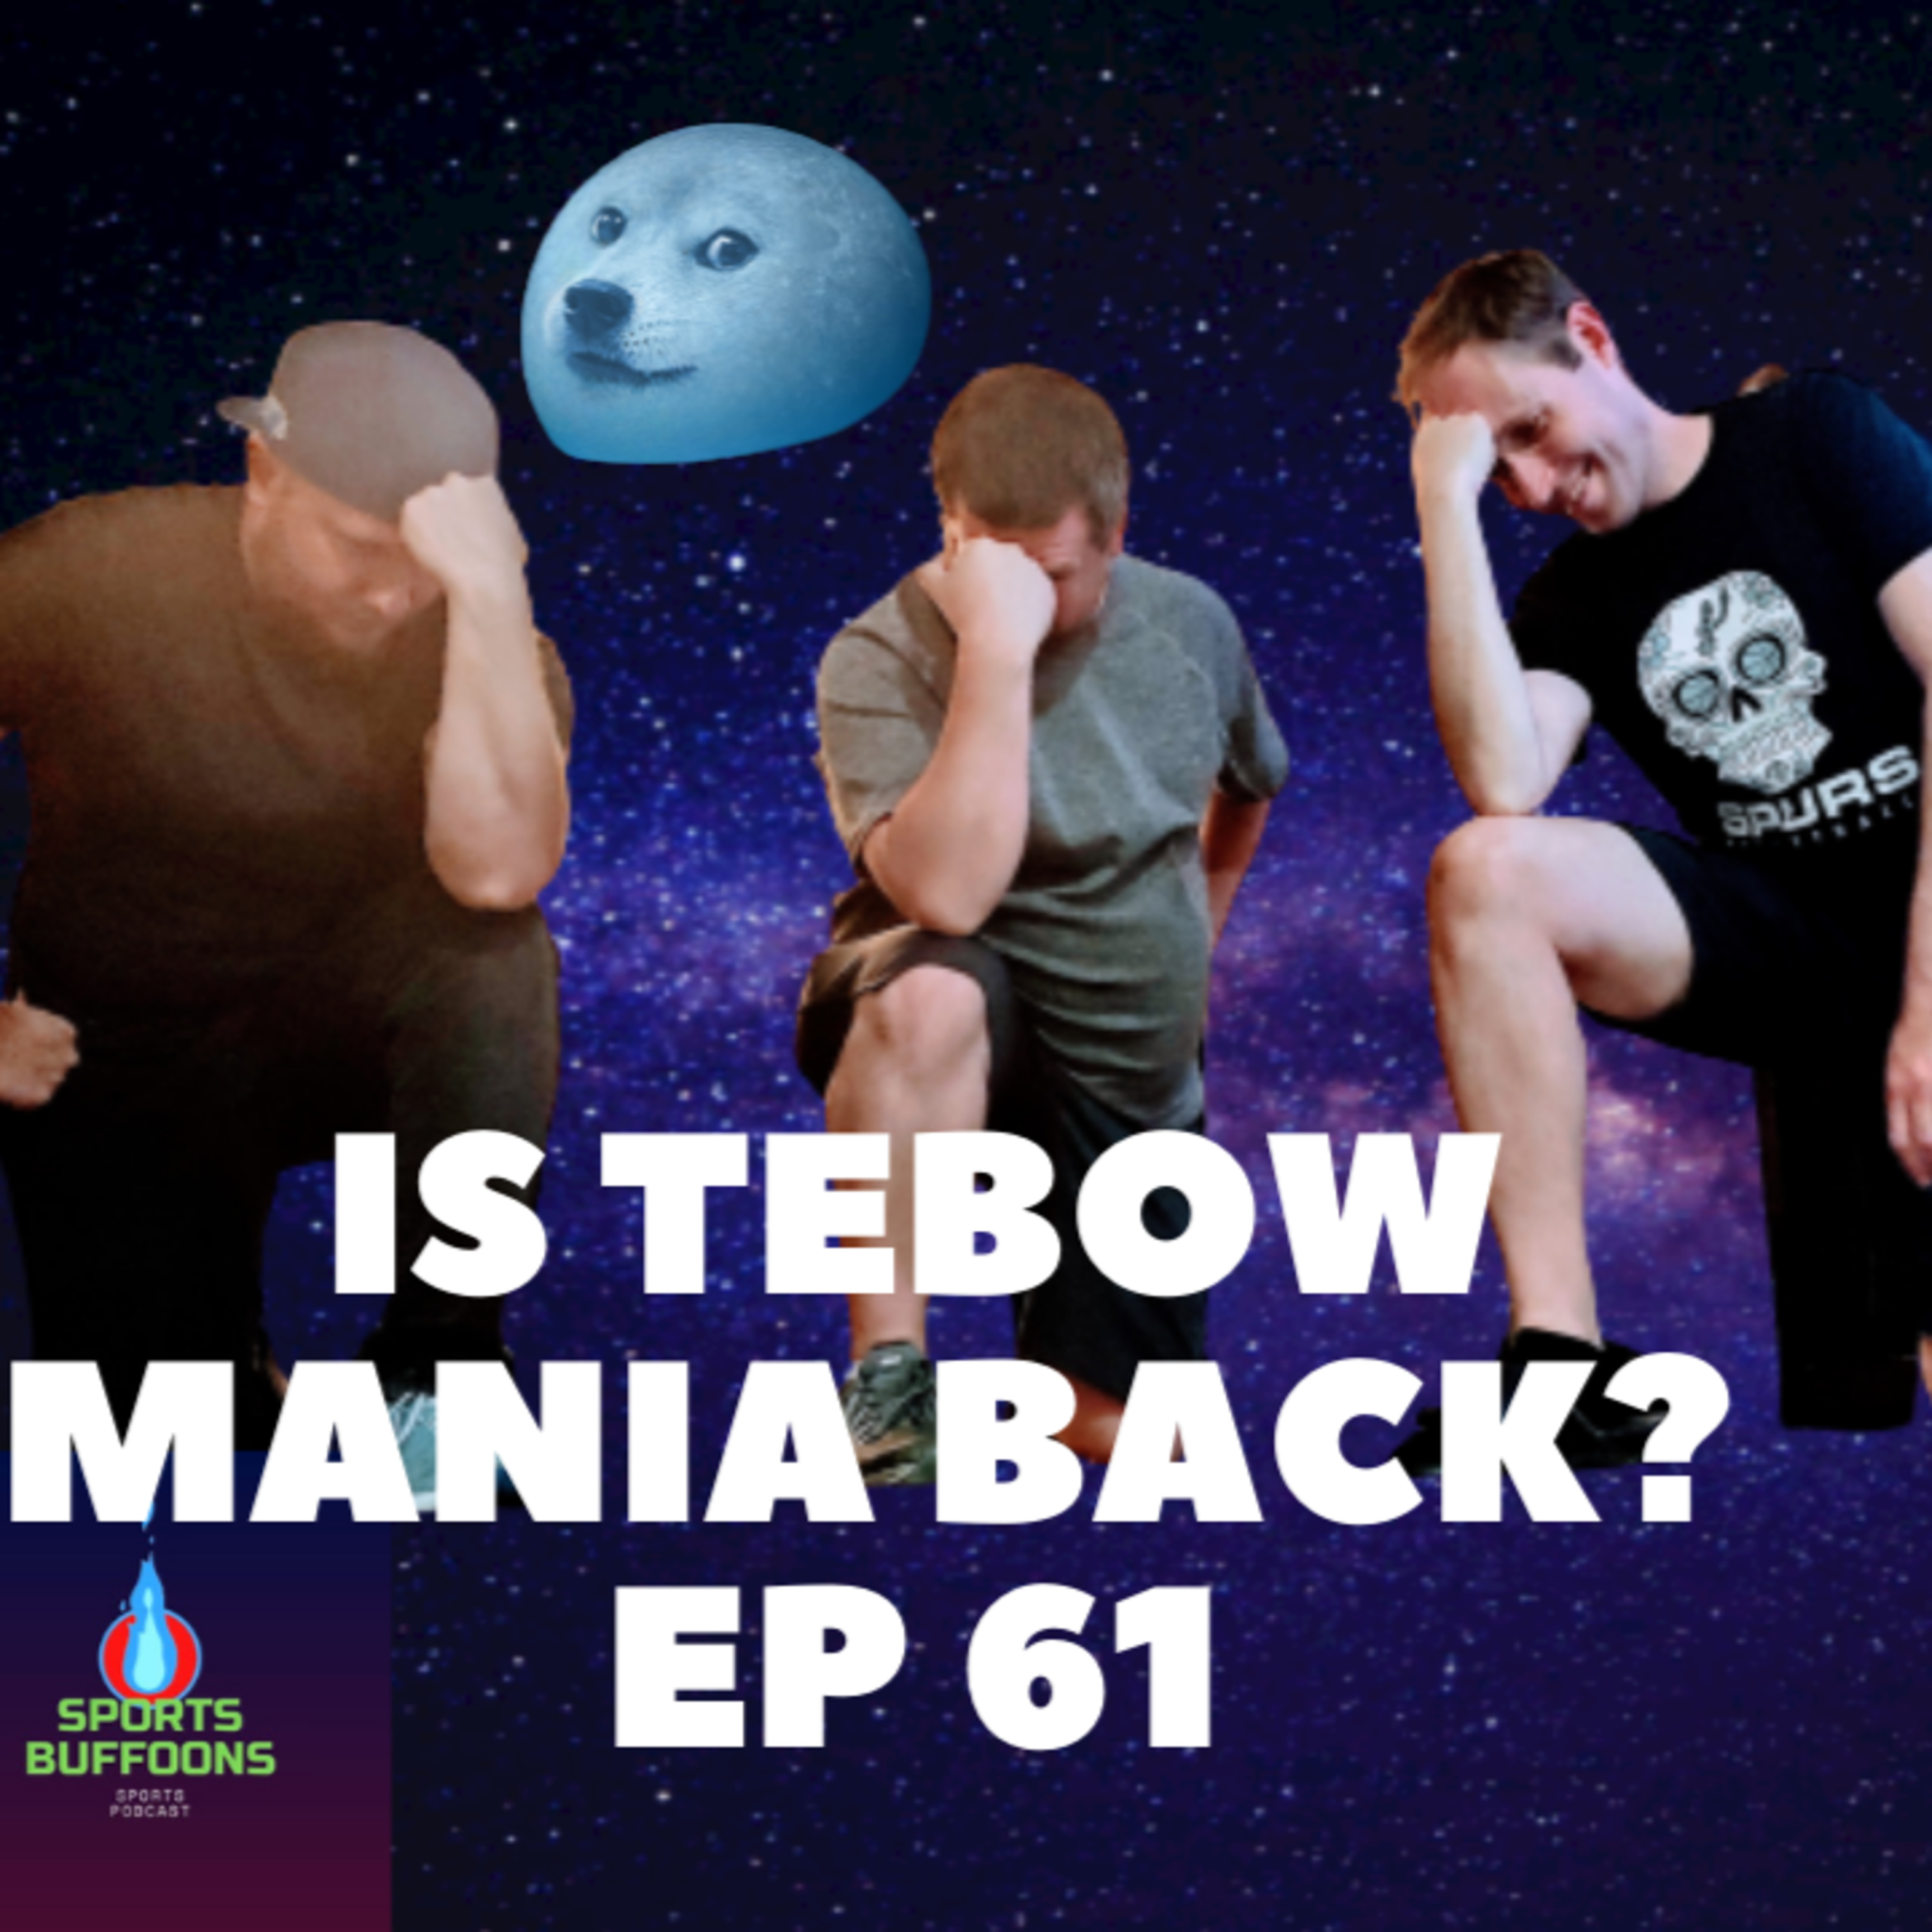 TEBOW MANIA IS BACK?? -- EP 61